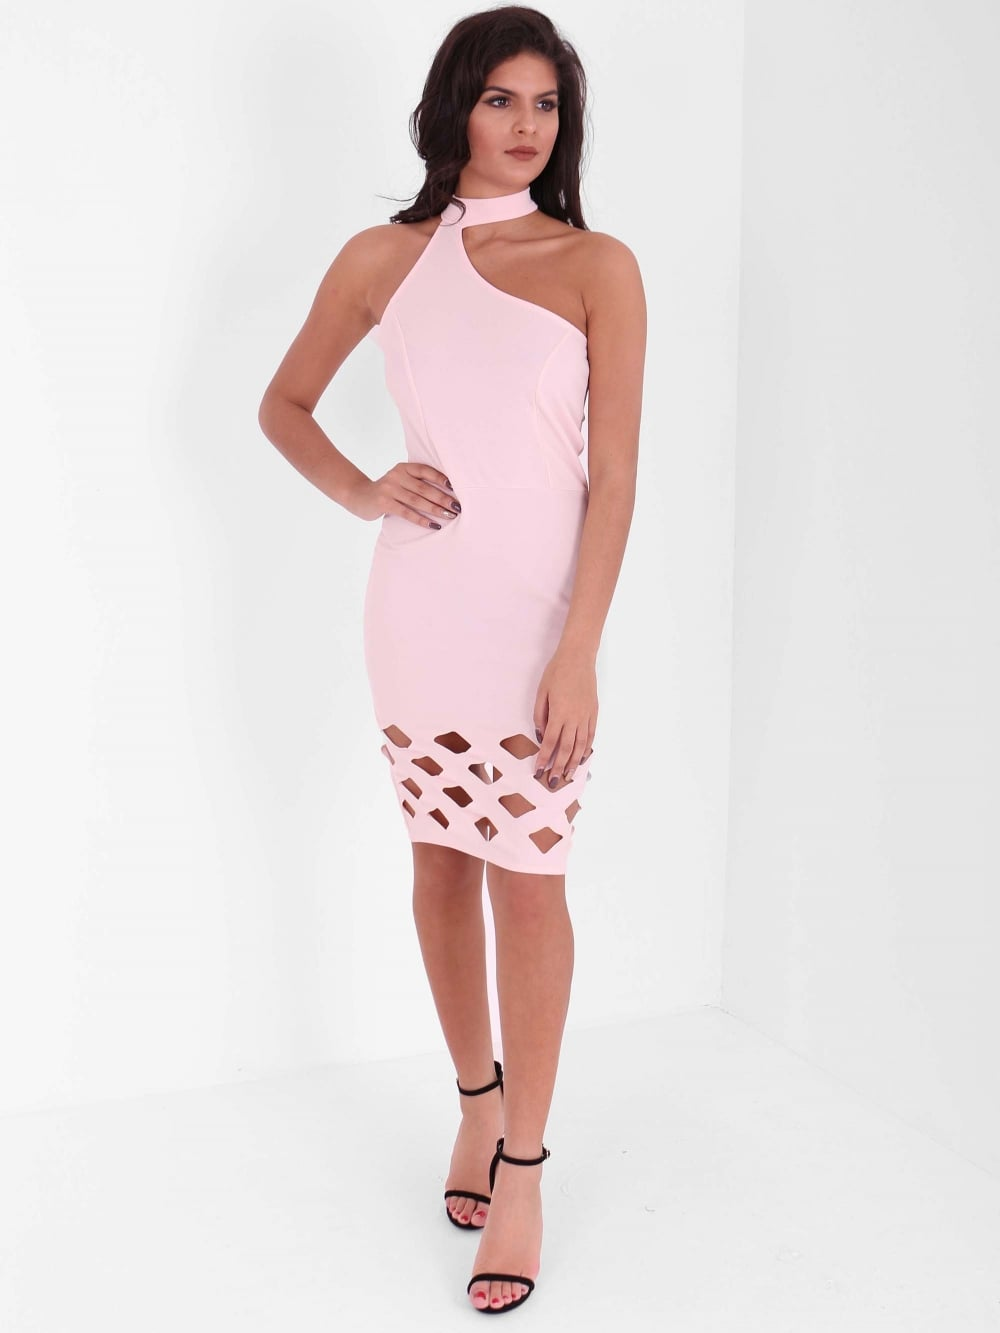 Asymmetric Chocker Laser Cut Dress - Inoxclothing